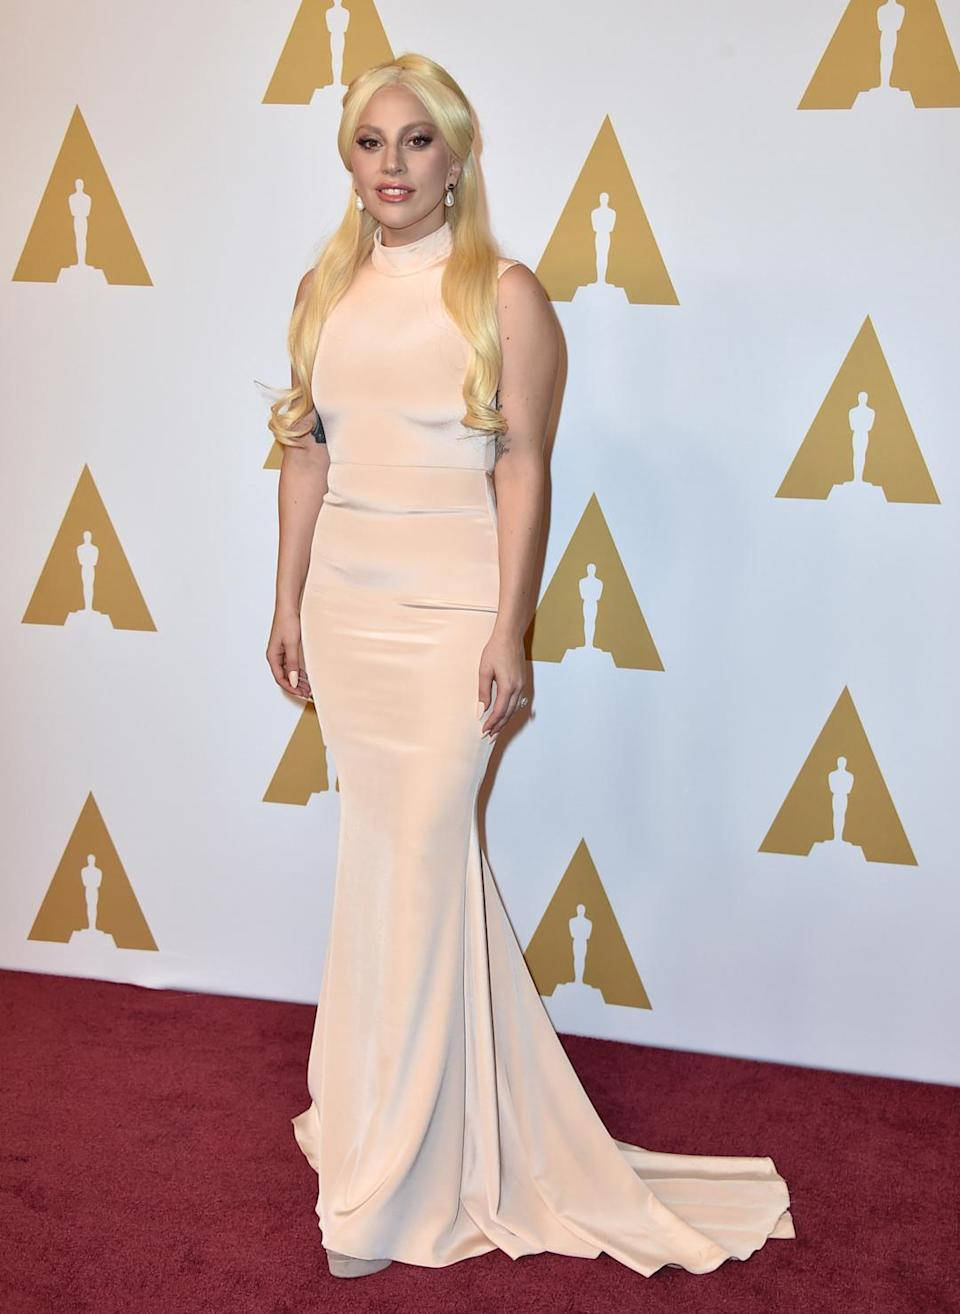 <p>The singer, who performed the National Anthem in Santa Clara at the Super Bowl on Sunday, switched gears less than 24 hours later. At the Oscar nominees luncheon, Lady Gaga wore a cream-colored gown with her blonde hair (or, rather, someone else's) pulled into a half-up, half-down 'do. <i>Photo: AP</i></p>